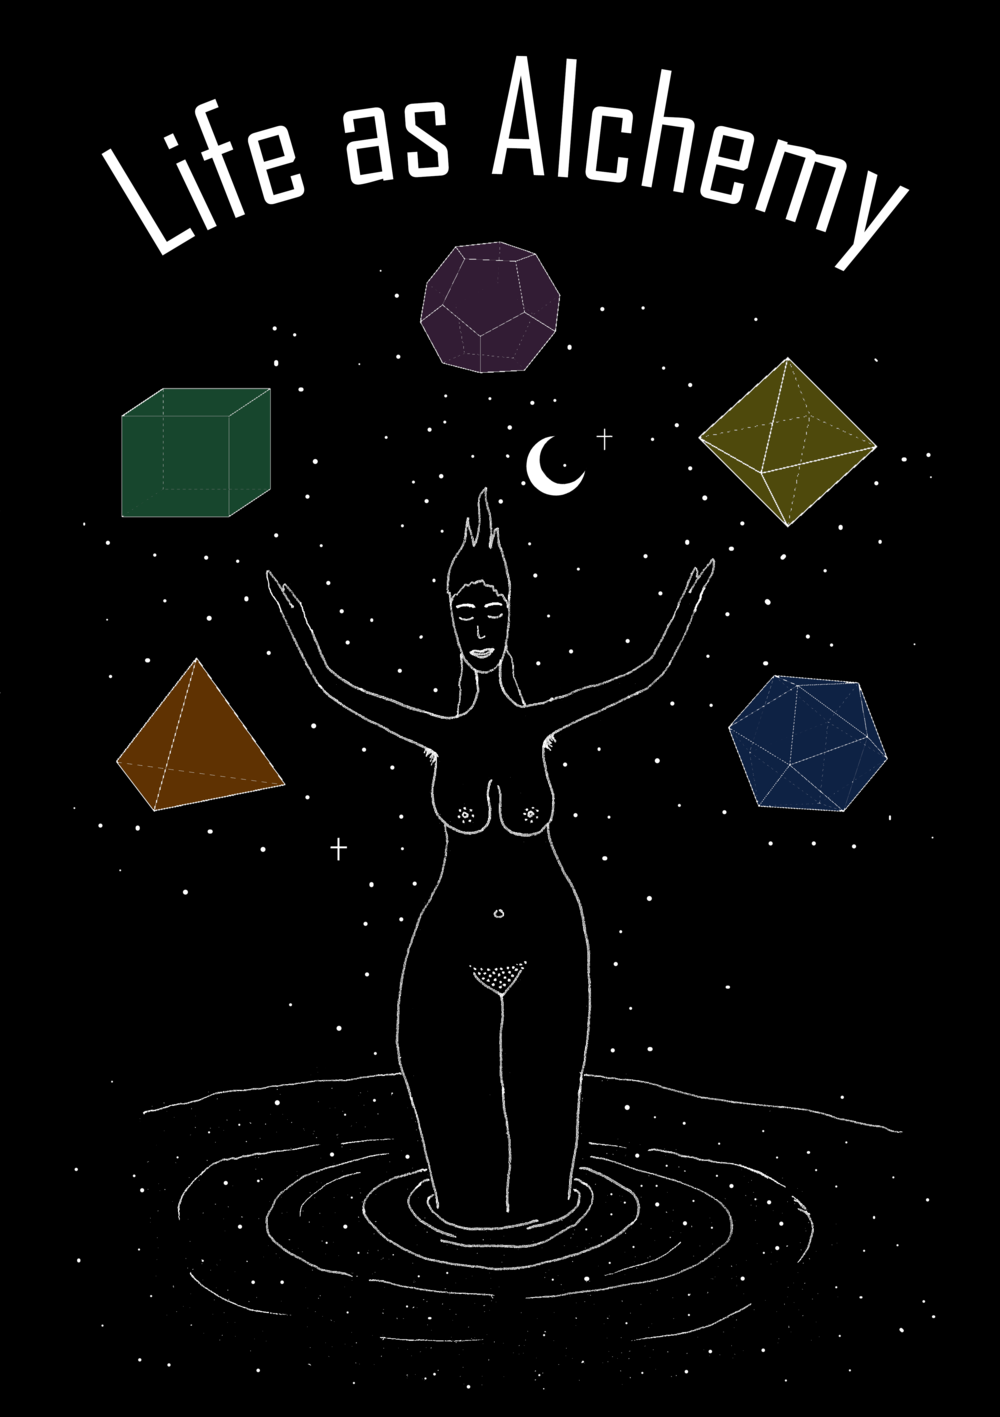 Life As Alchemy Poster  €9.99–€14.99 Available in A4, A3